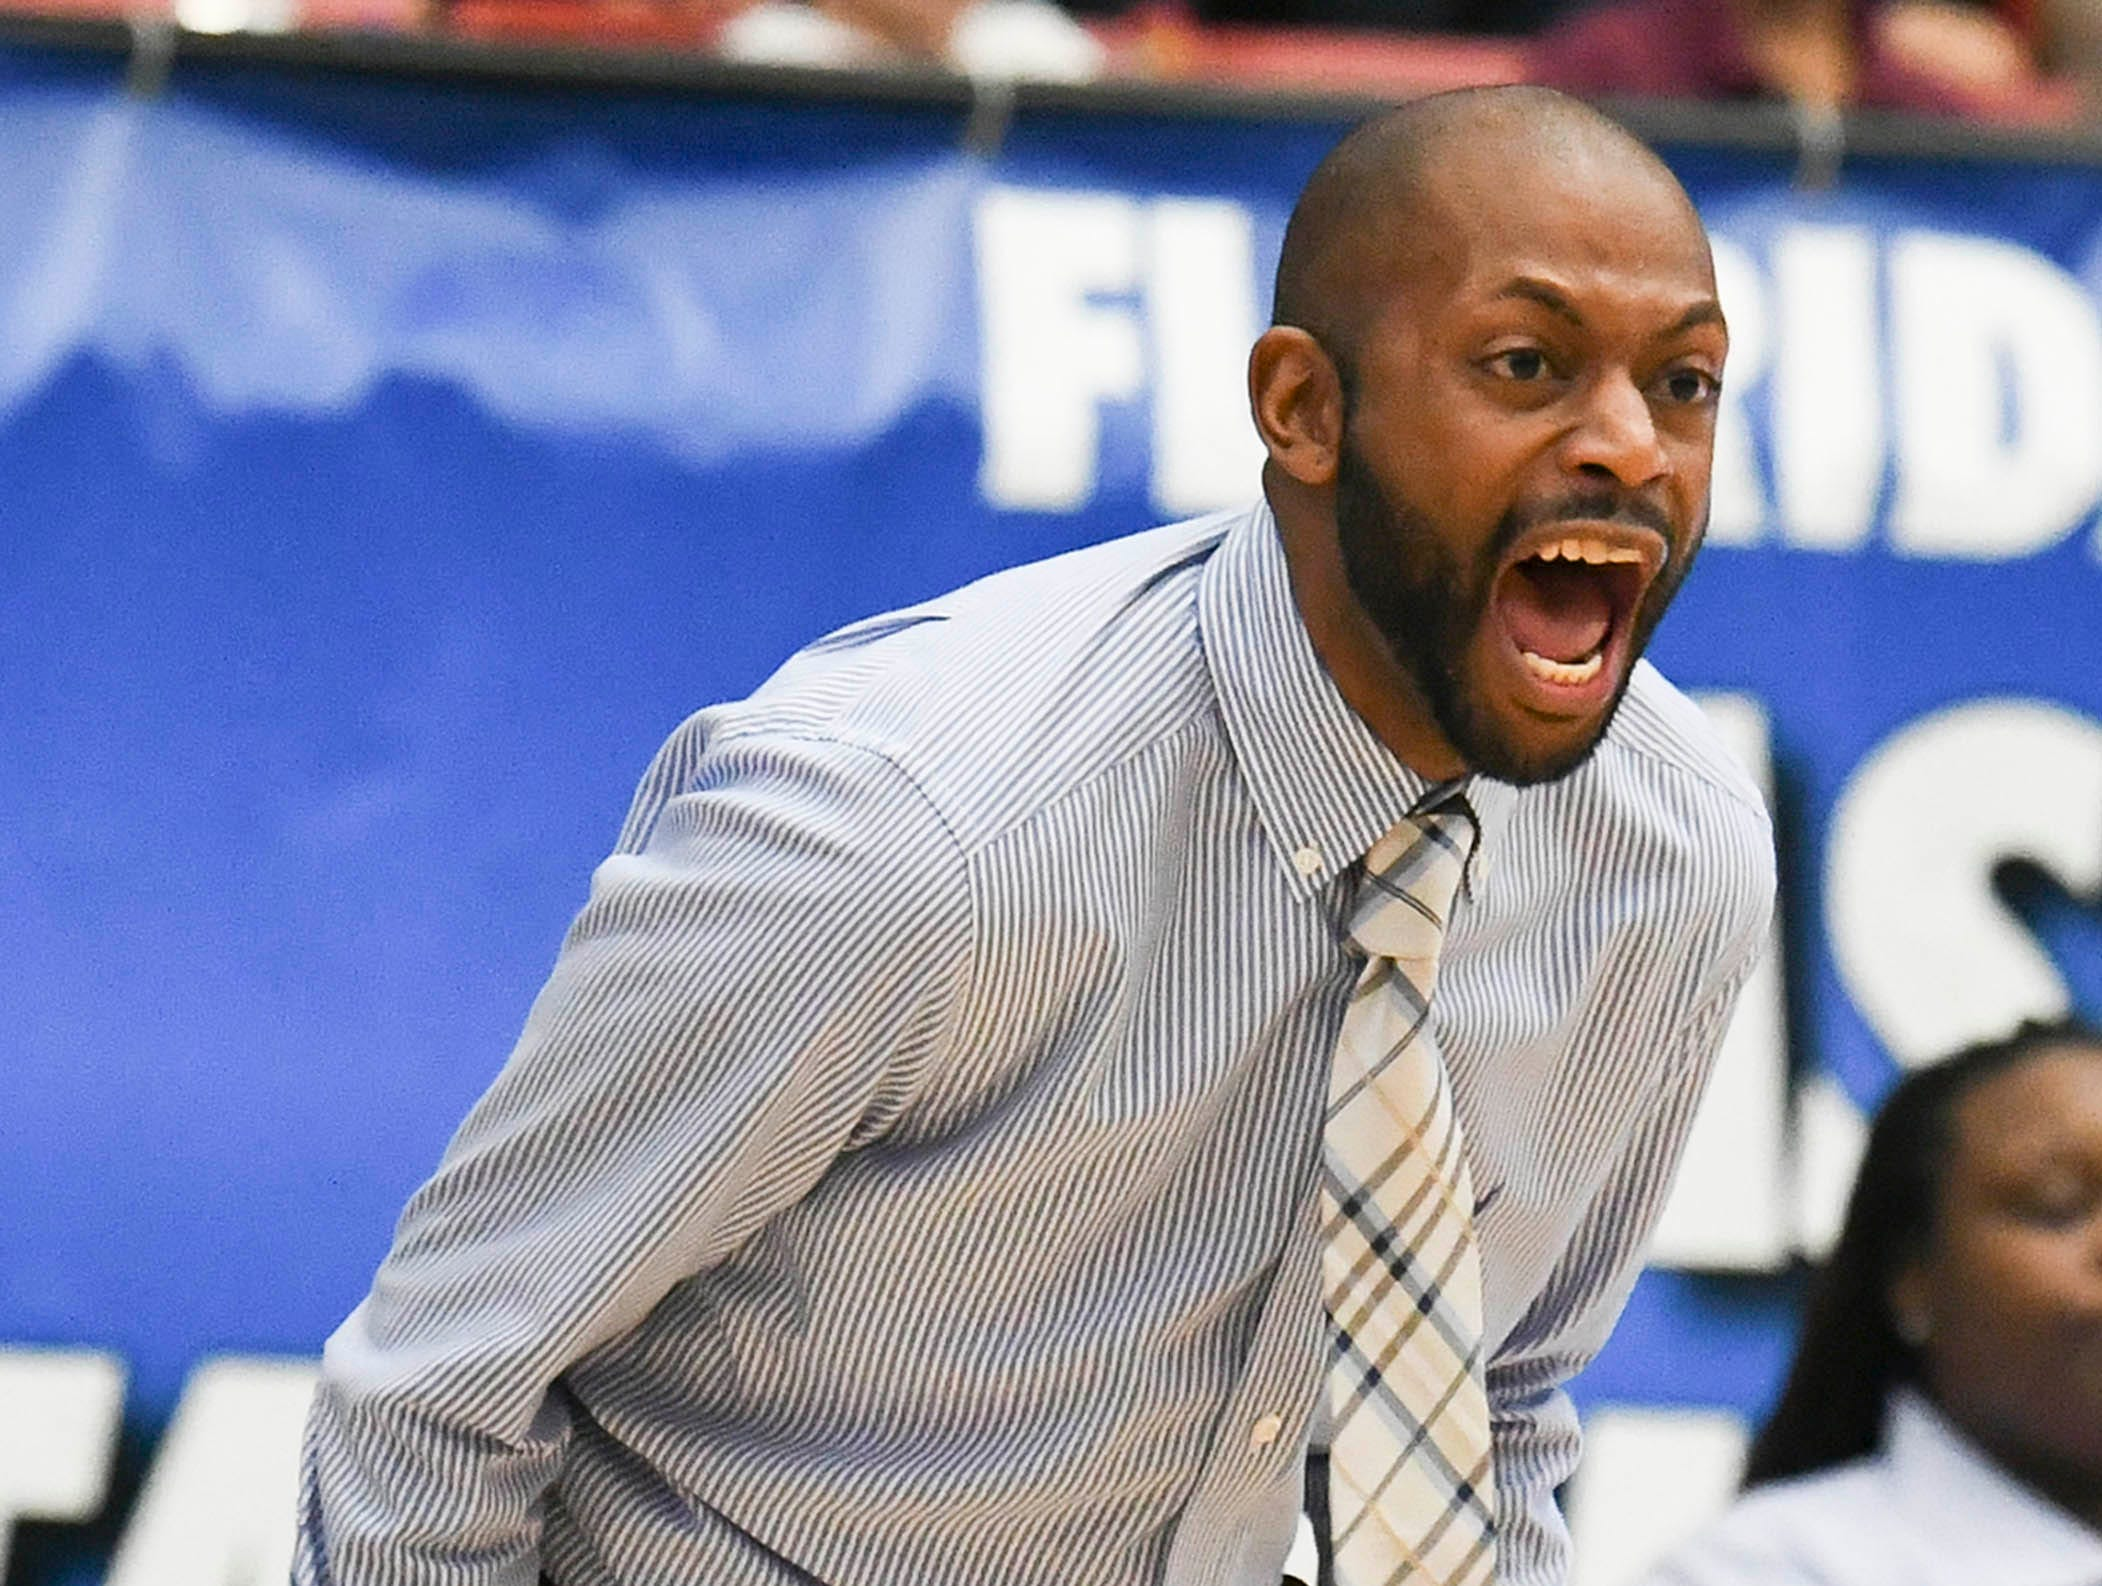 Florida Prep basketball head coach EJ ''''''''Murray yells to his players during Tuesday's Class 2A state championship game.